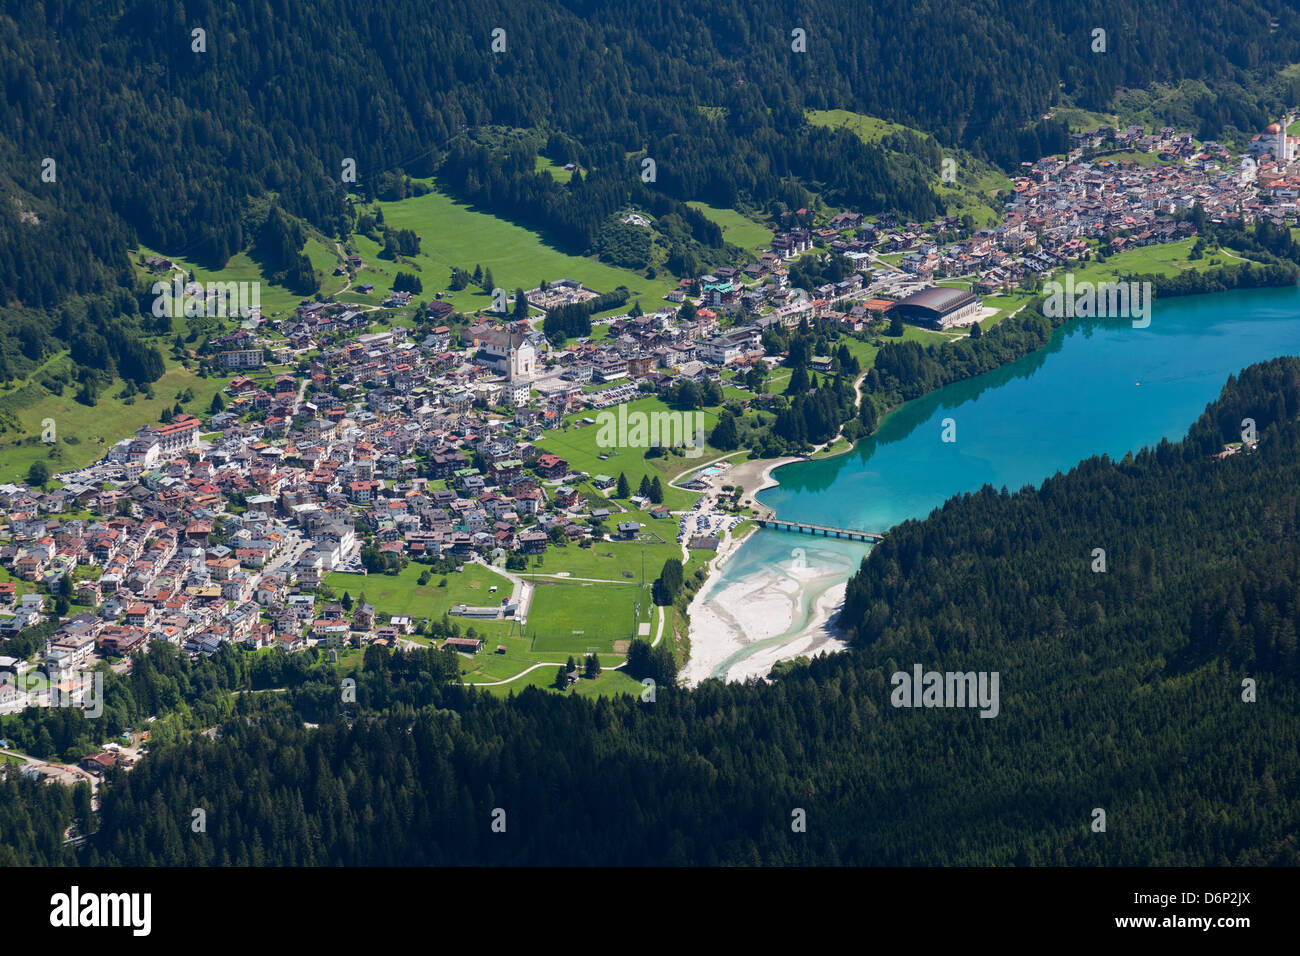 Auronzo village and lake in the Belluno Dolomites, Italy, Europe - Stock Image